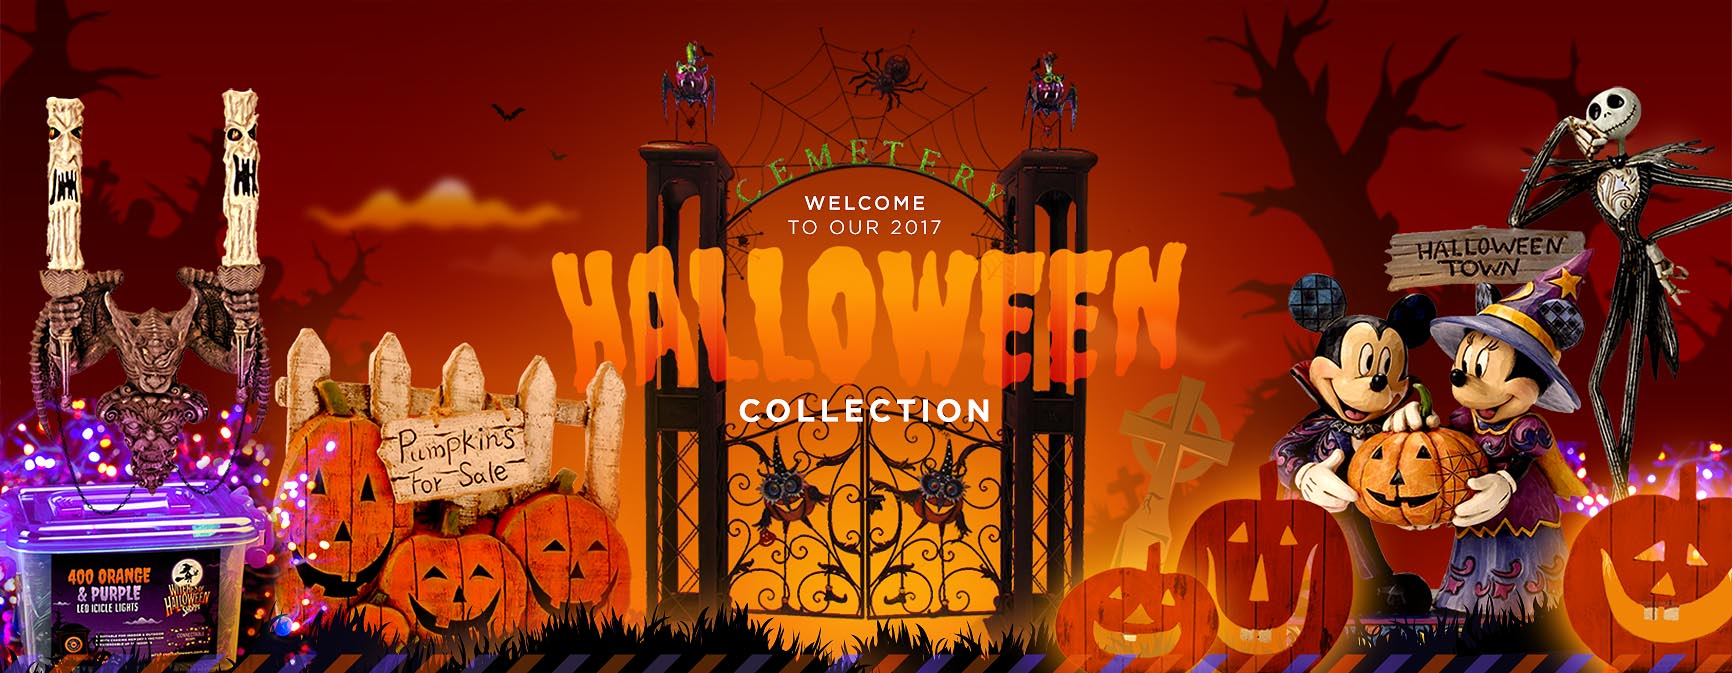 Launching our 2017 Halloween Colletion